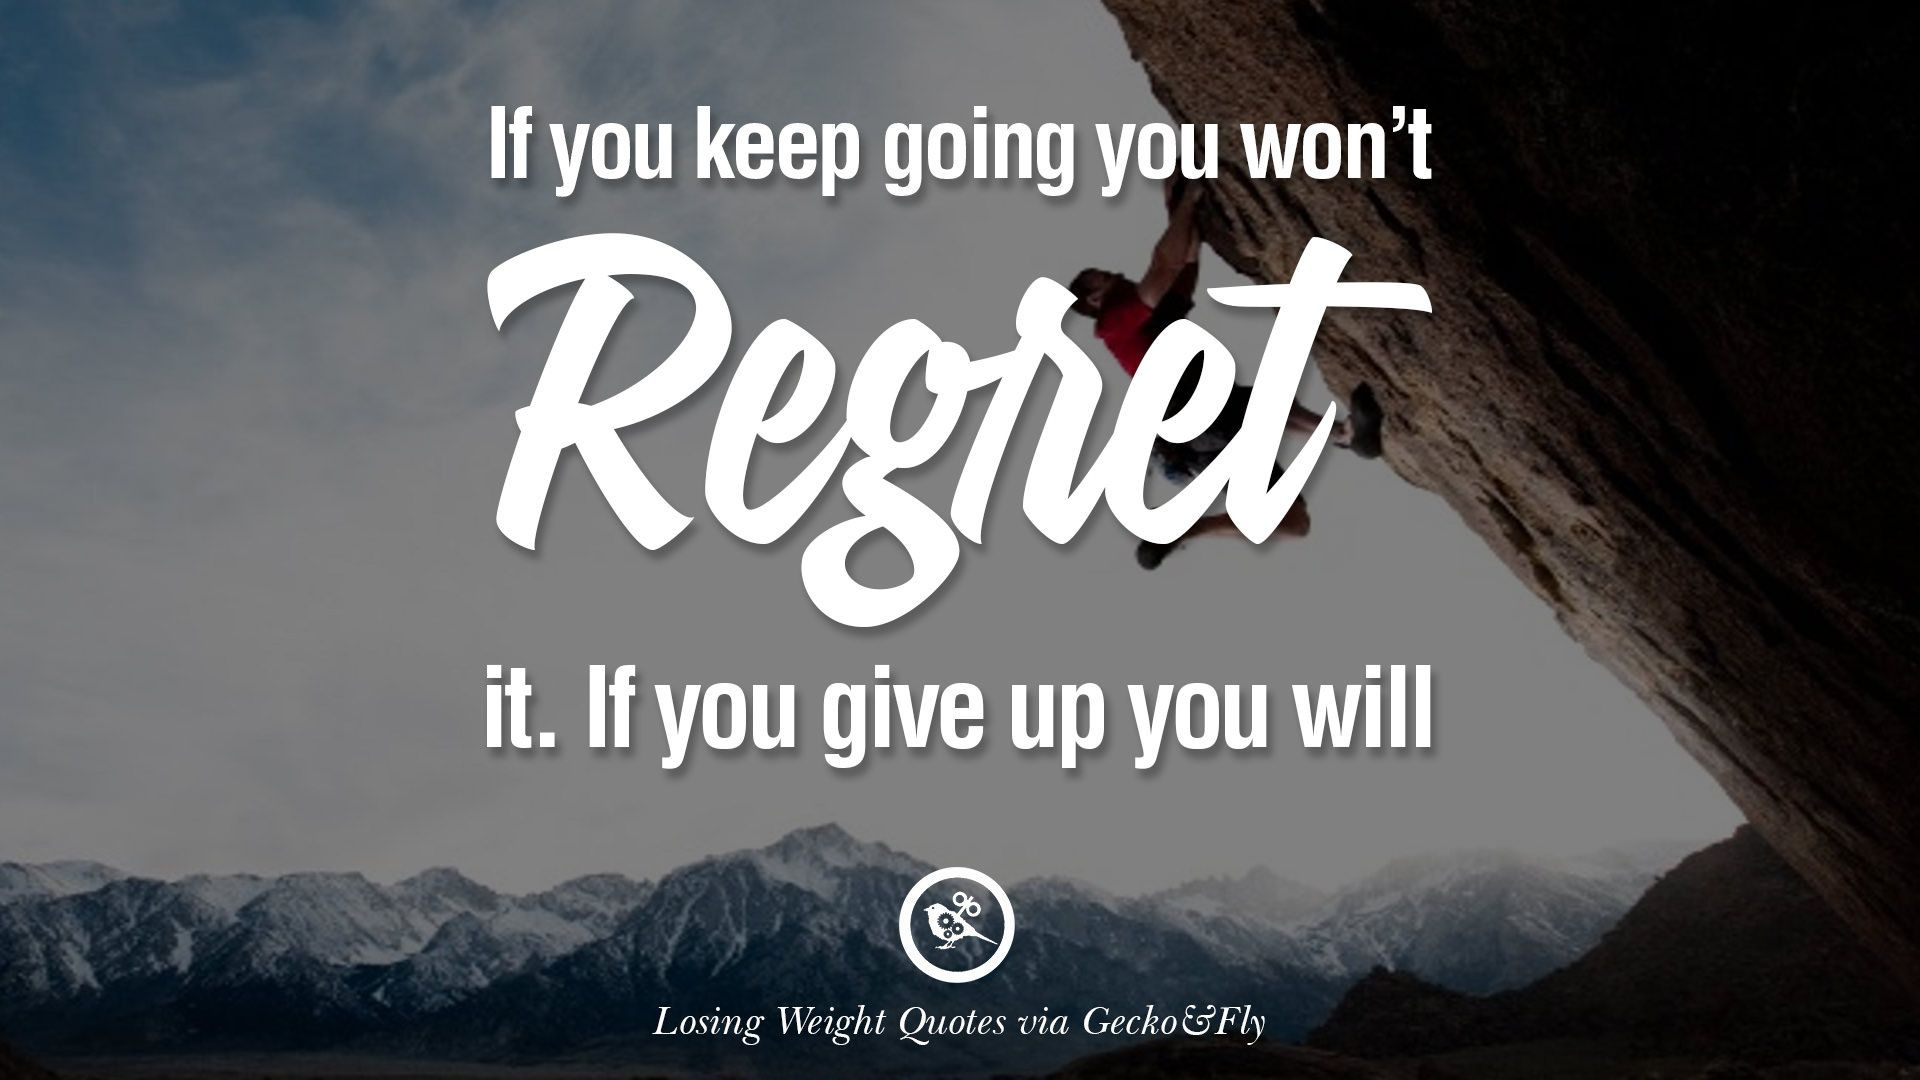 Losing Weight Quotes Not Losing Weight To Give Up Quotes  Diet Motivation  Pinterest